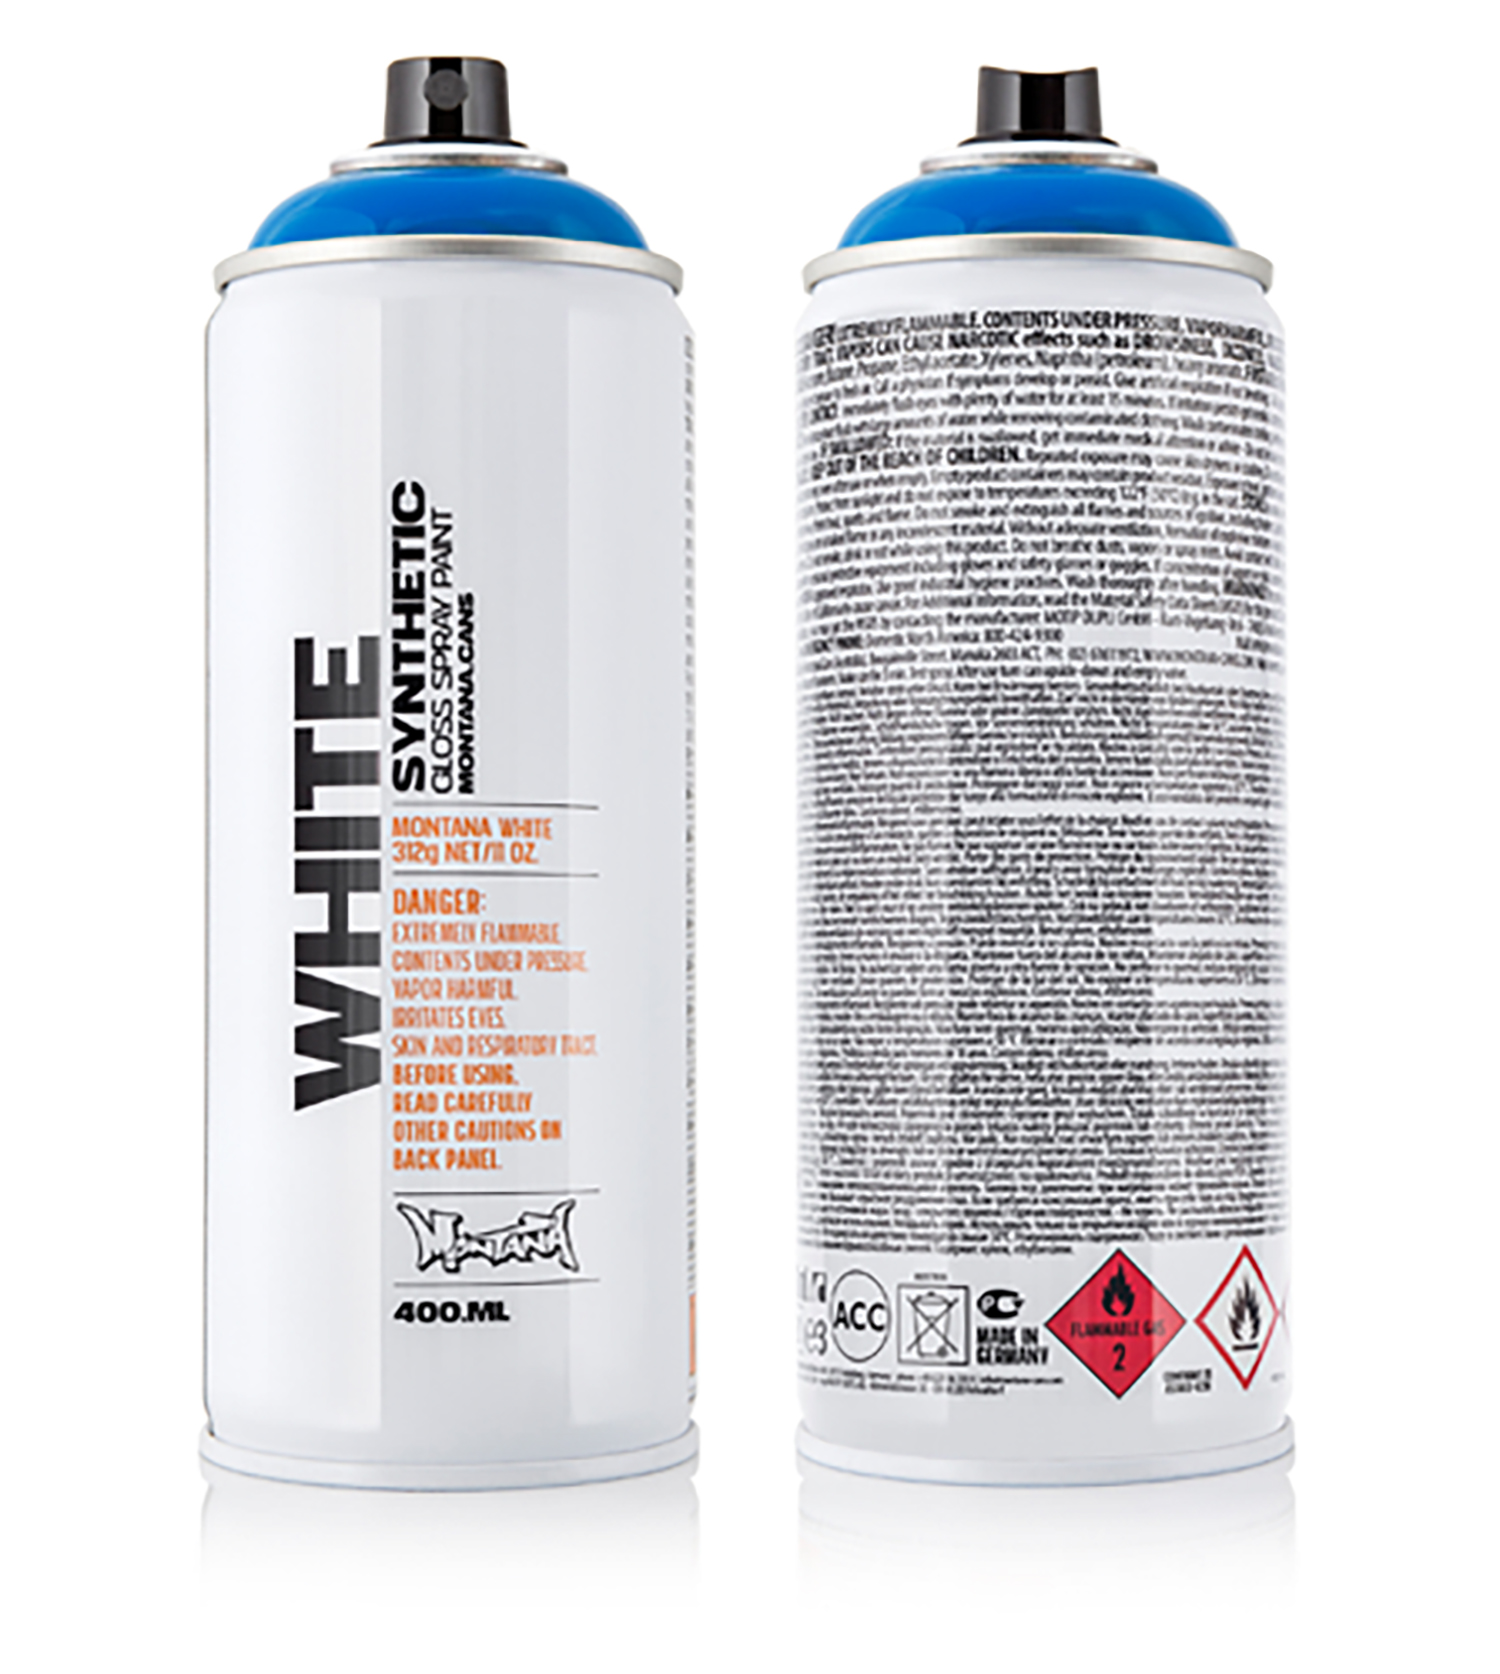 MONTANA-WHITE-SPRAY-400ML-5250